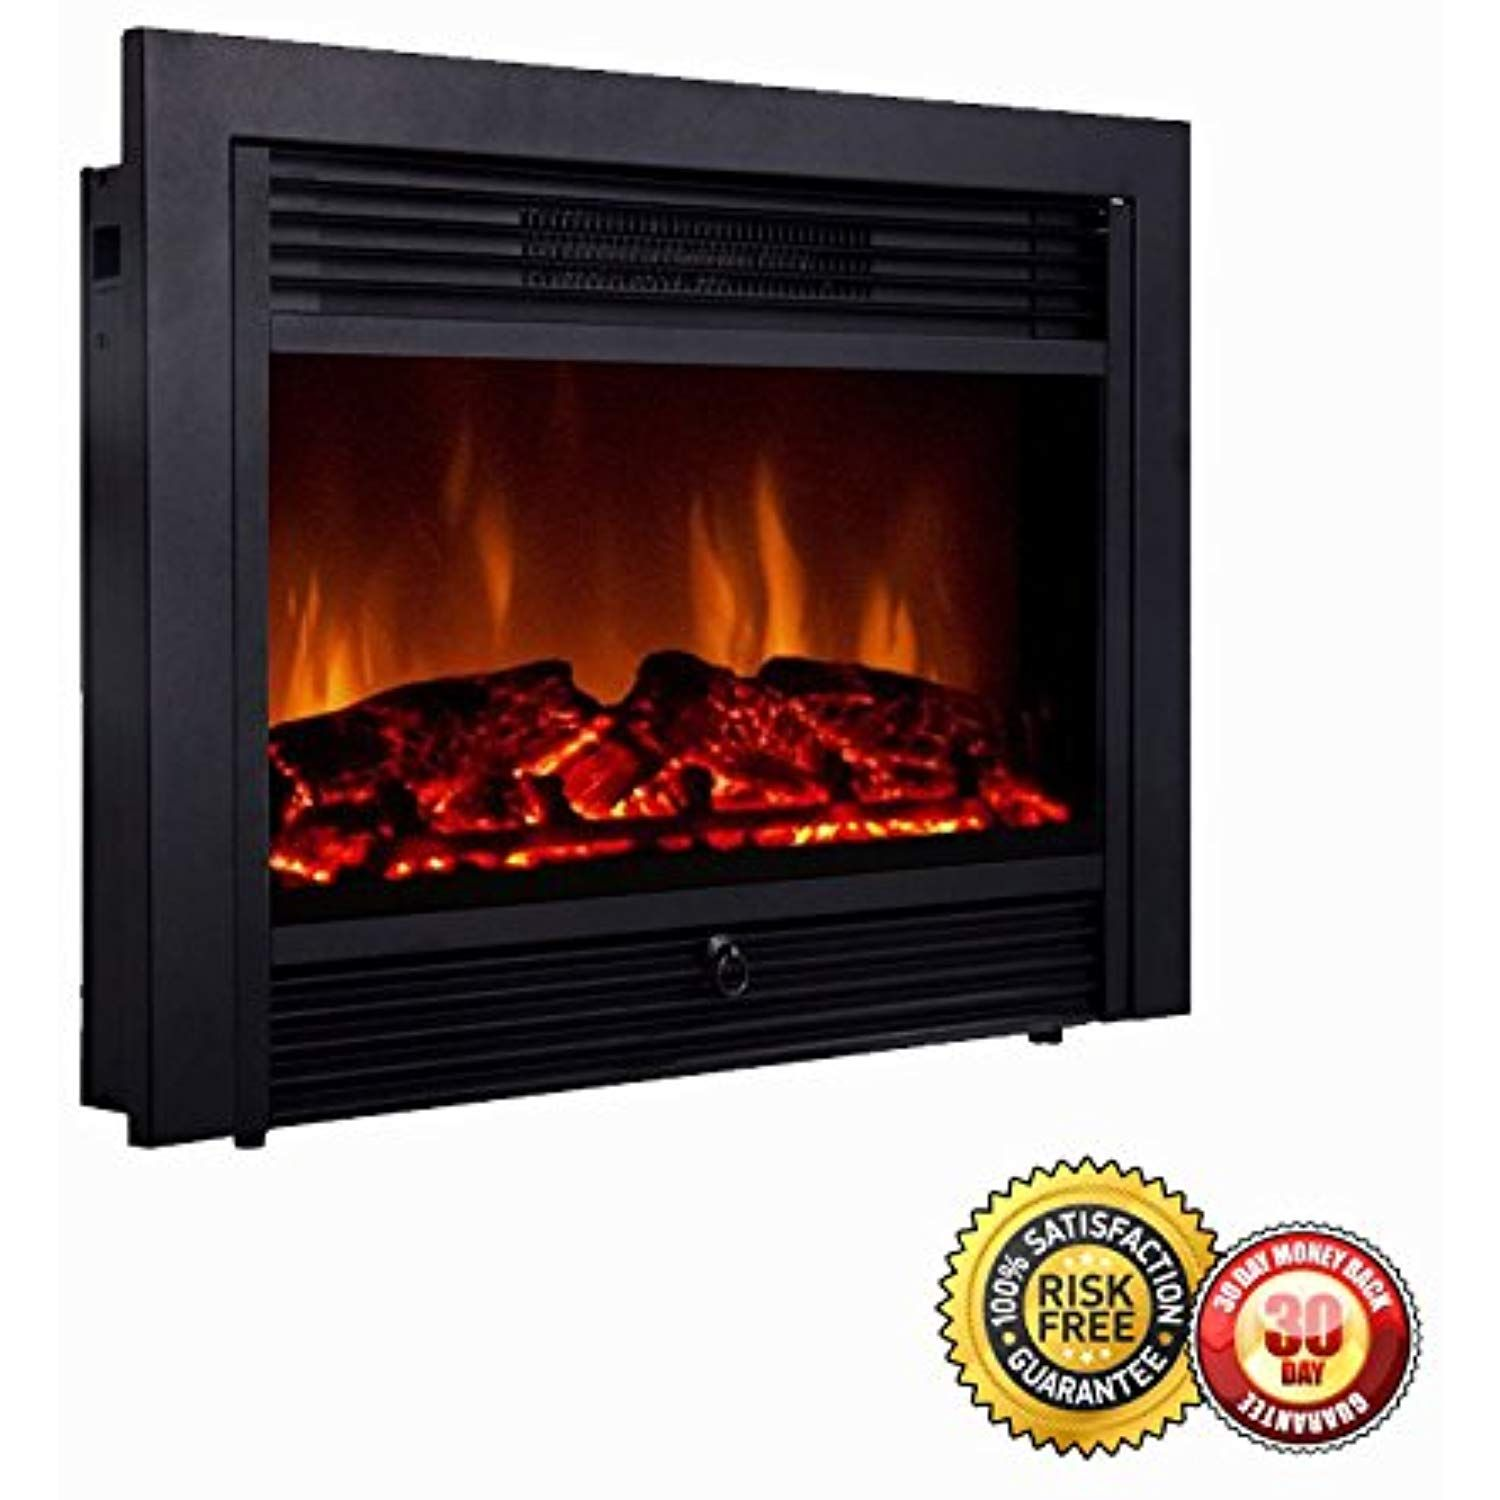 New 28 5 Embedded Fireplace Electric Insert Heater Glass View Log